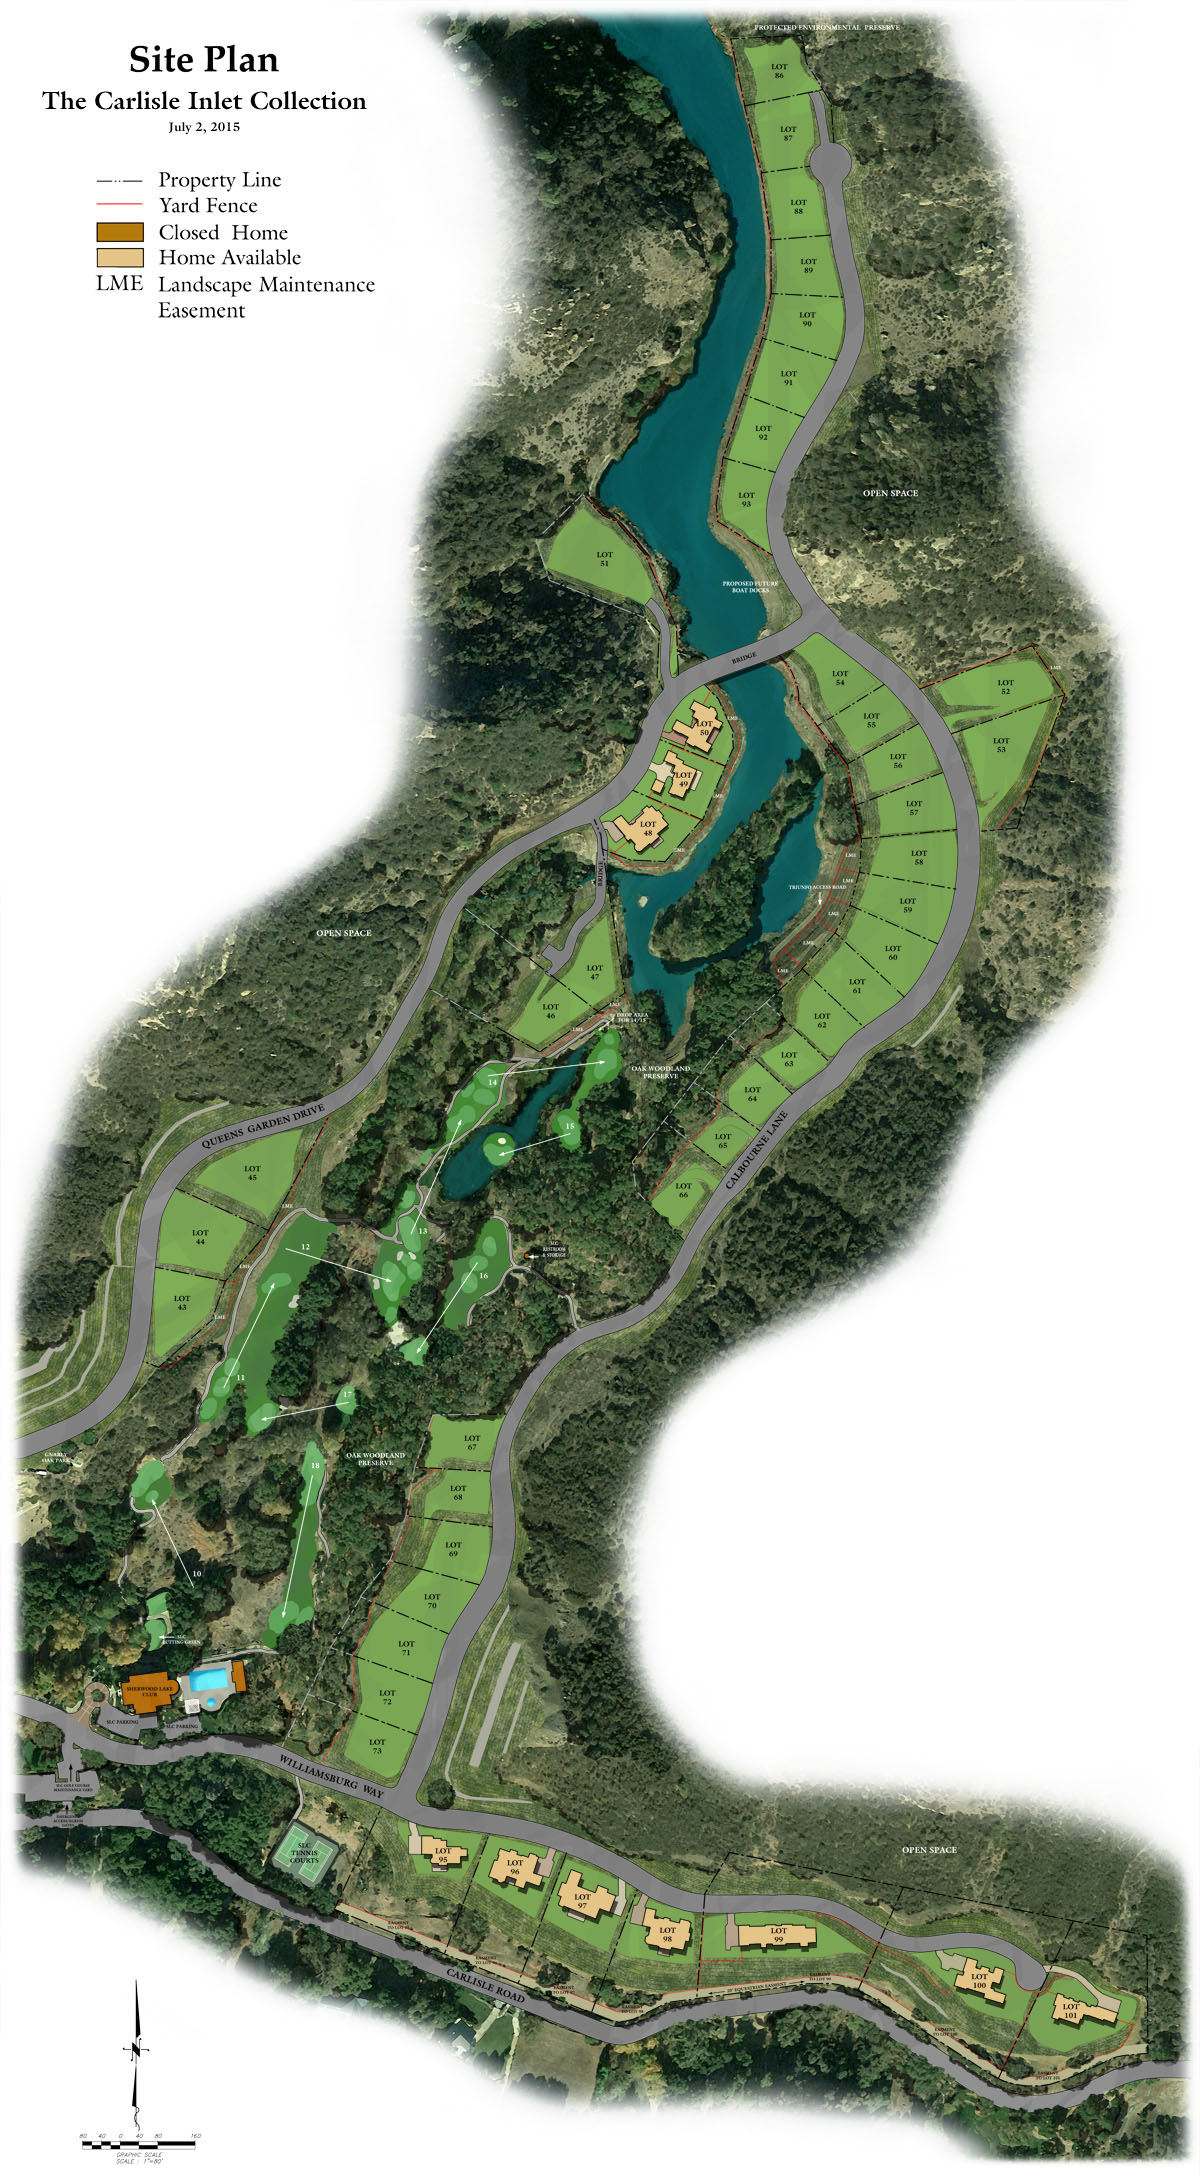 Carlisle Inlet Collection Site Plan Lake Sherwood, CA